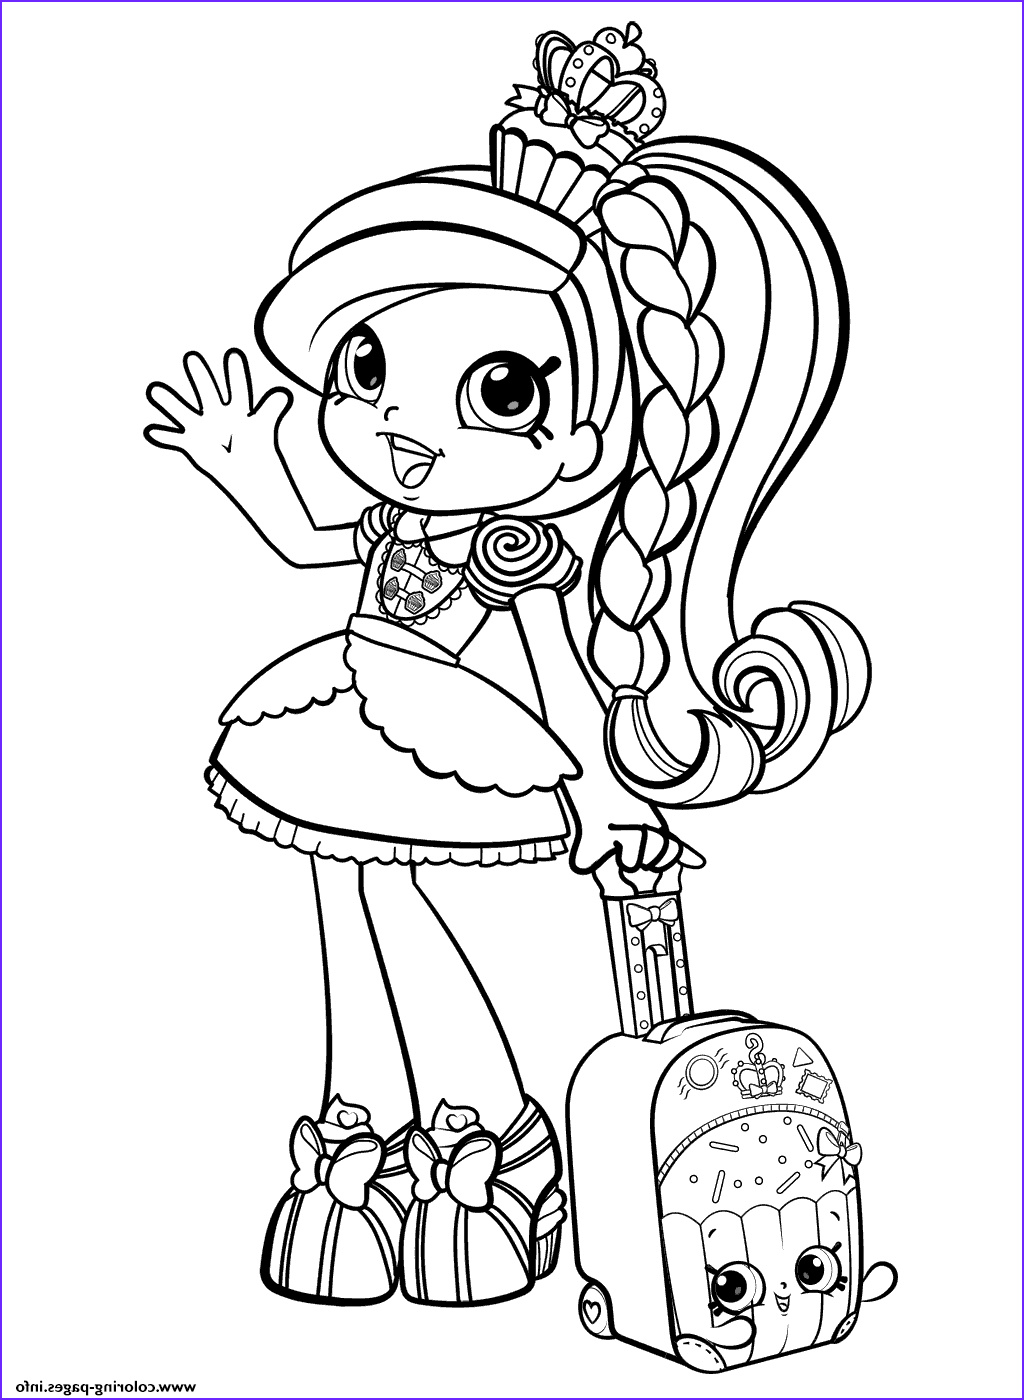 Girl Coloring Pages Inspirational Photos Shopkins Girl In World Vacation Season 8 Coloring Pages